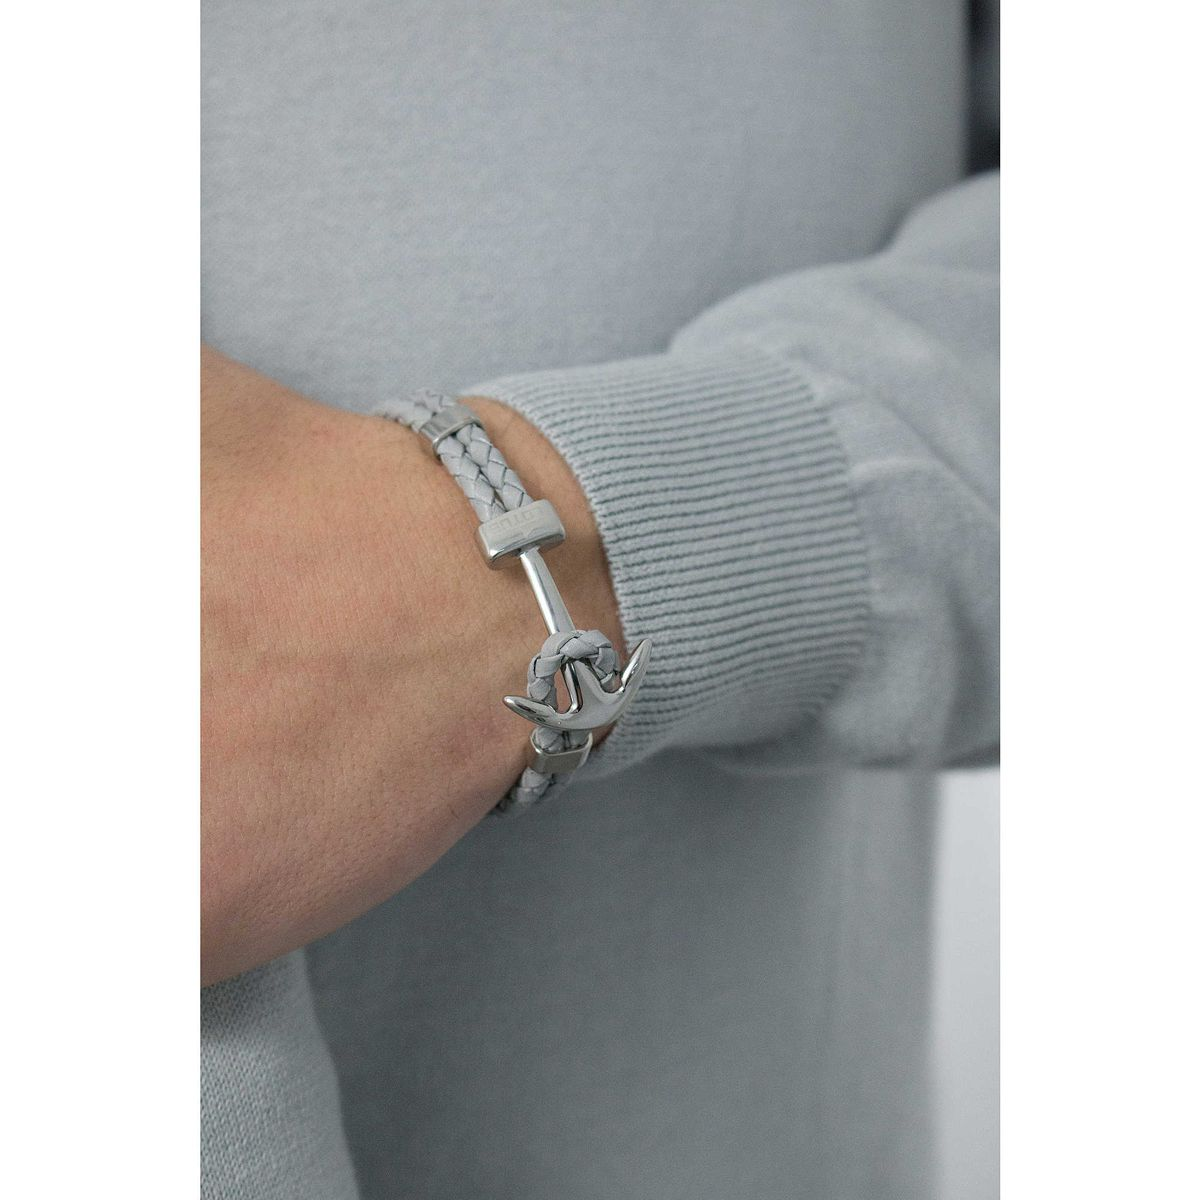 ANCHOR MAN BRACELET LS1832/2/3 Grey LOTUS Style